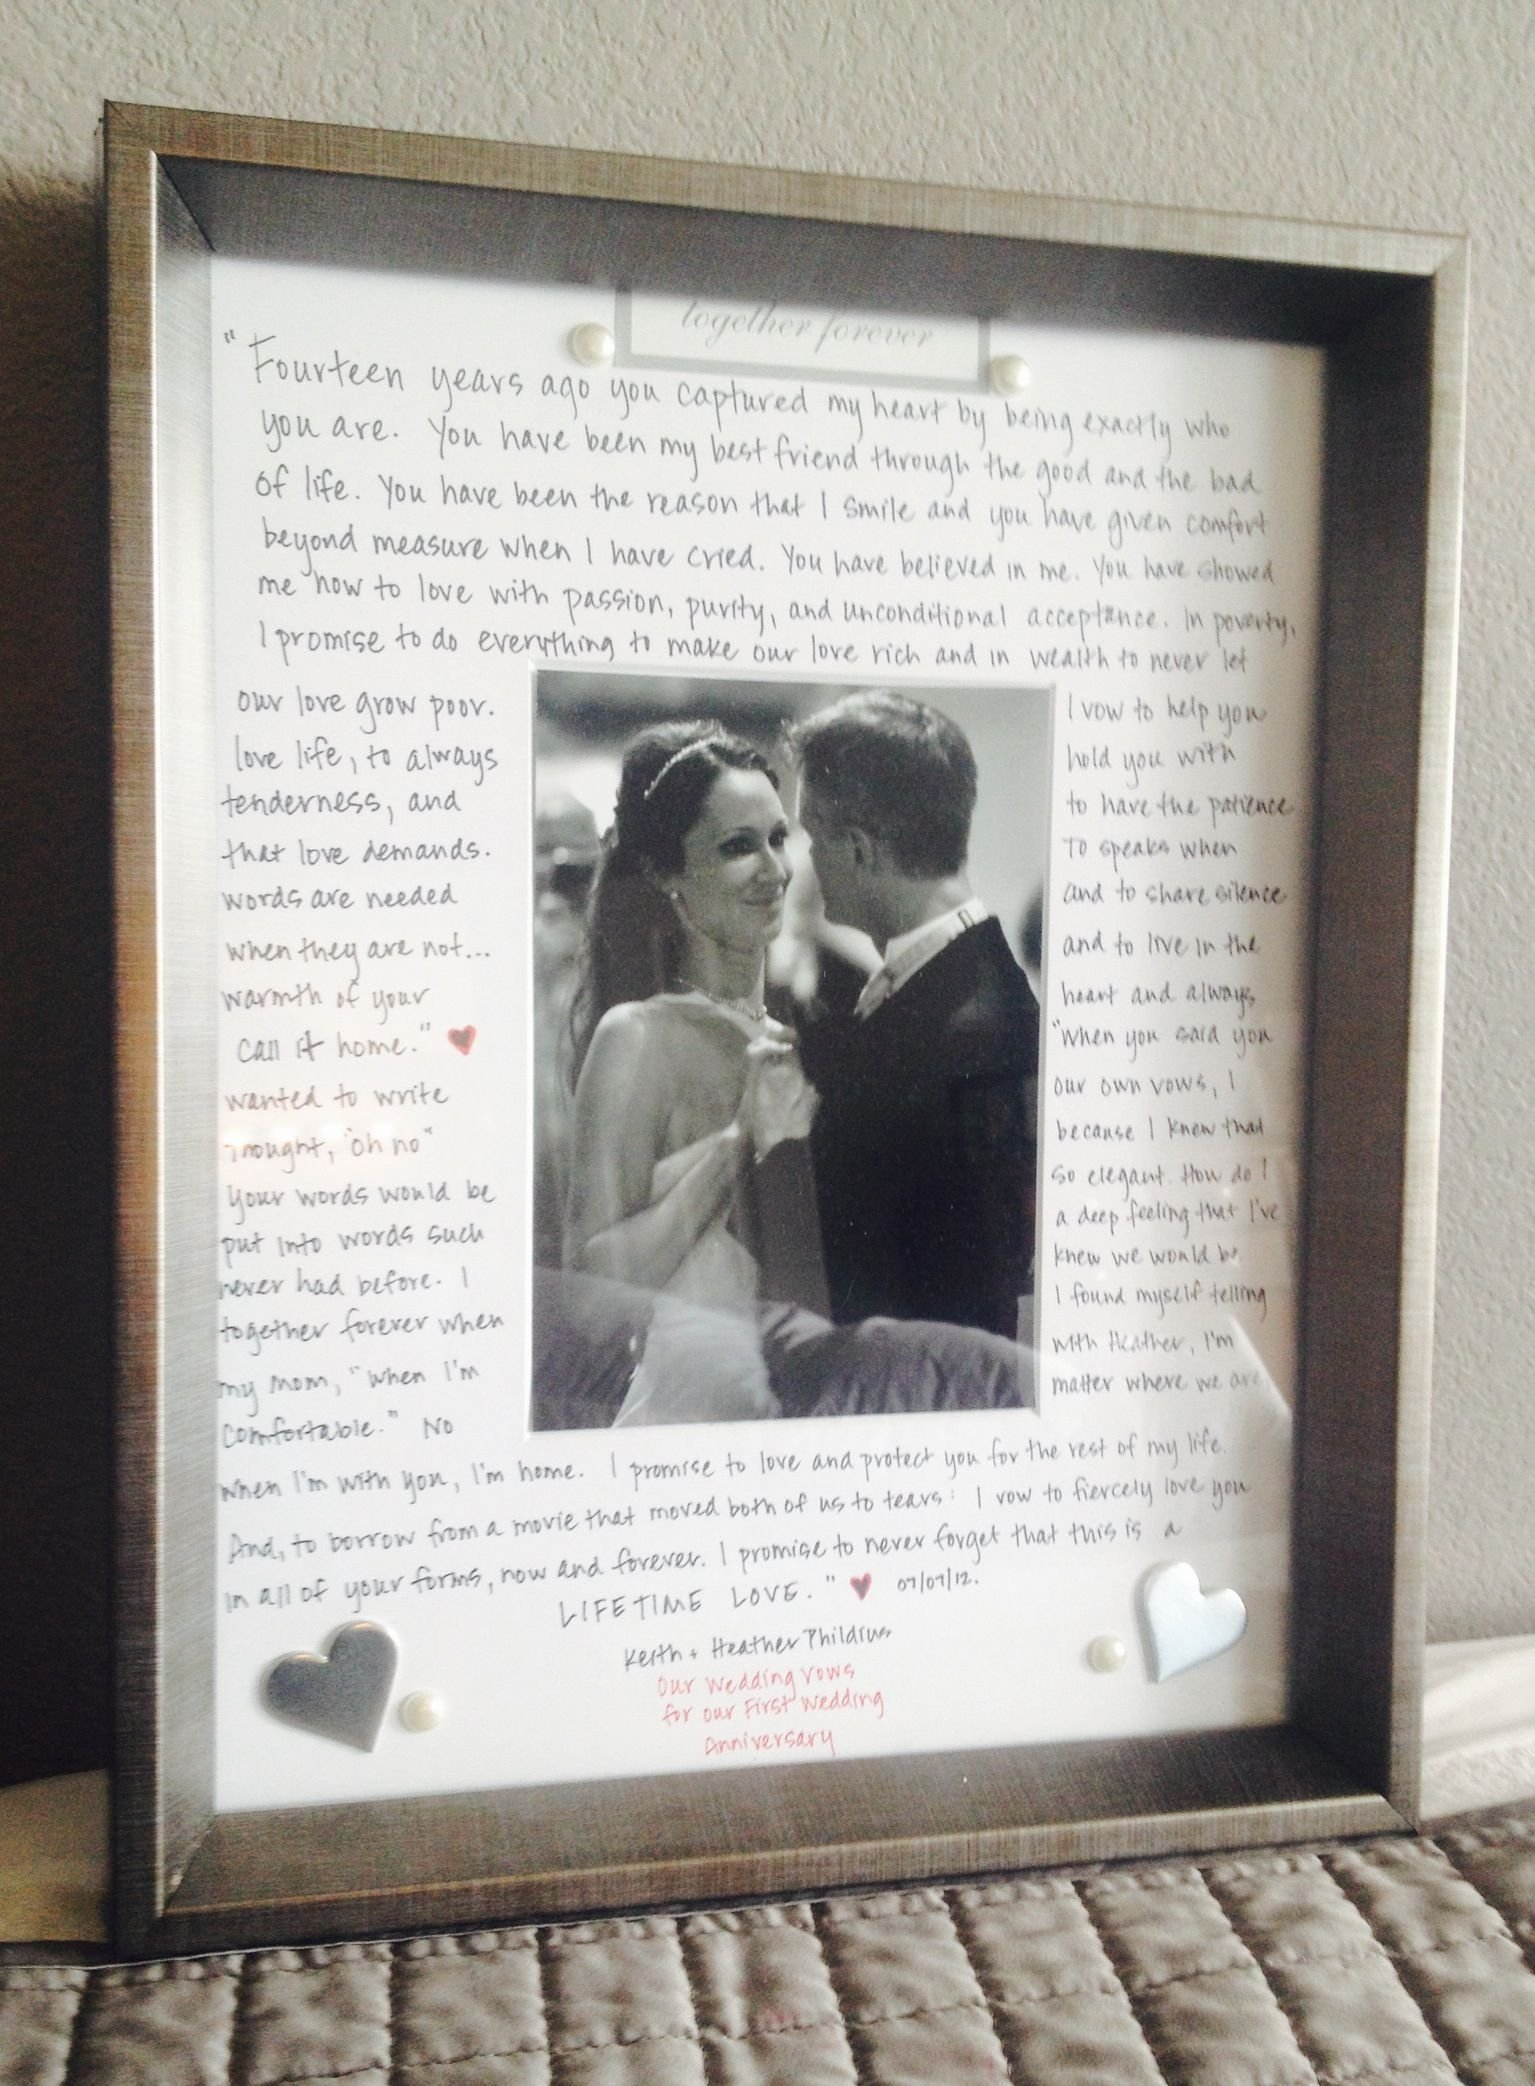 10 Amazing One Year Anniversary Gift Ideas For Husband first wedding anniversary gift to my husband our vows written out 1 2020